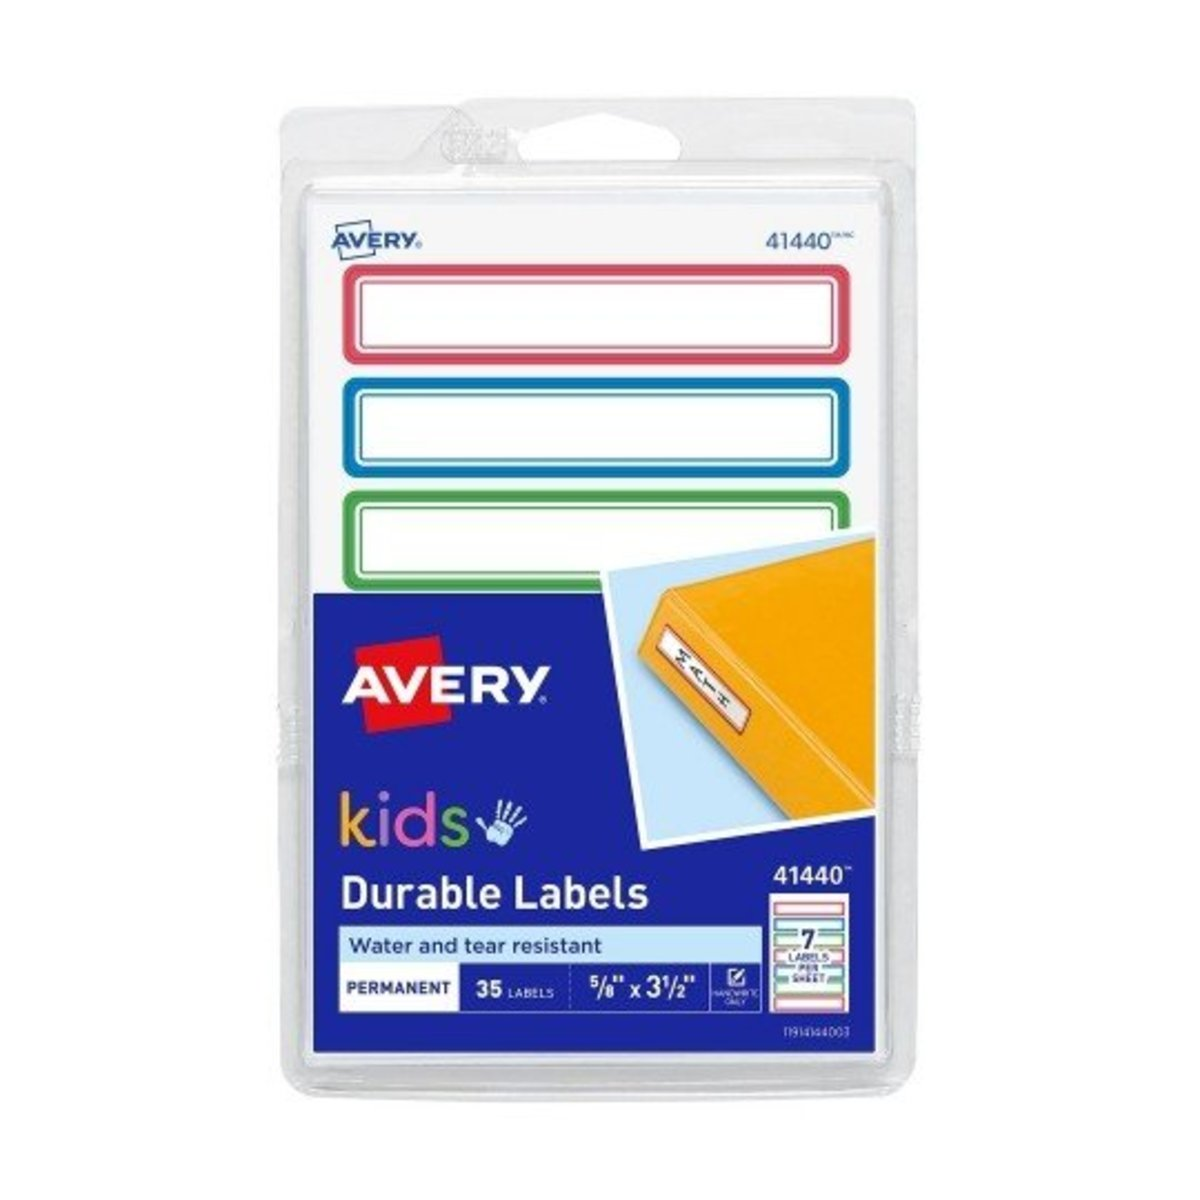 Avery - Durable Labels 41440